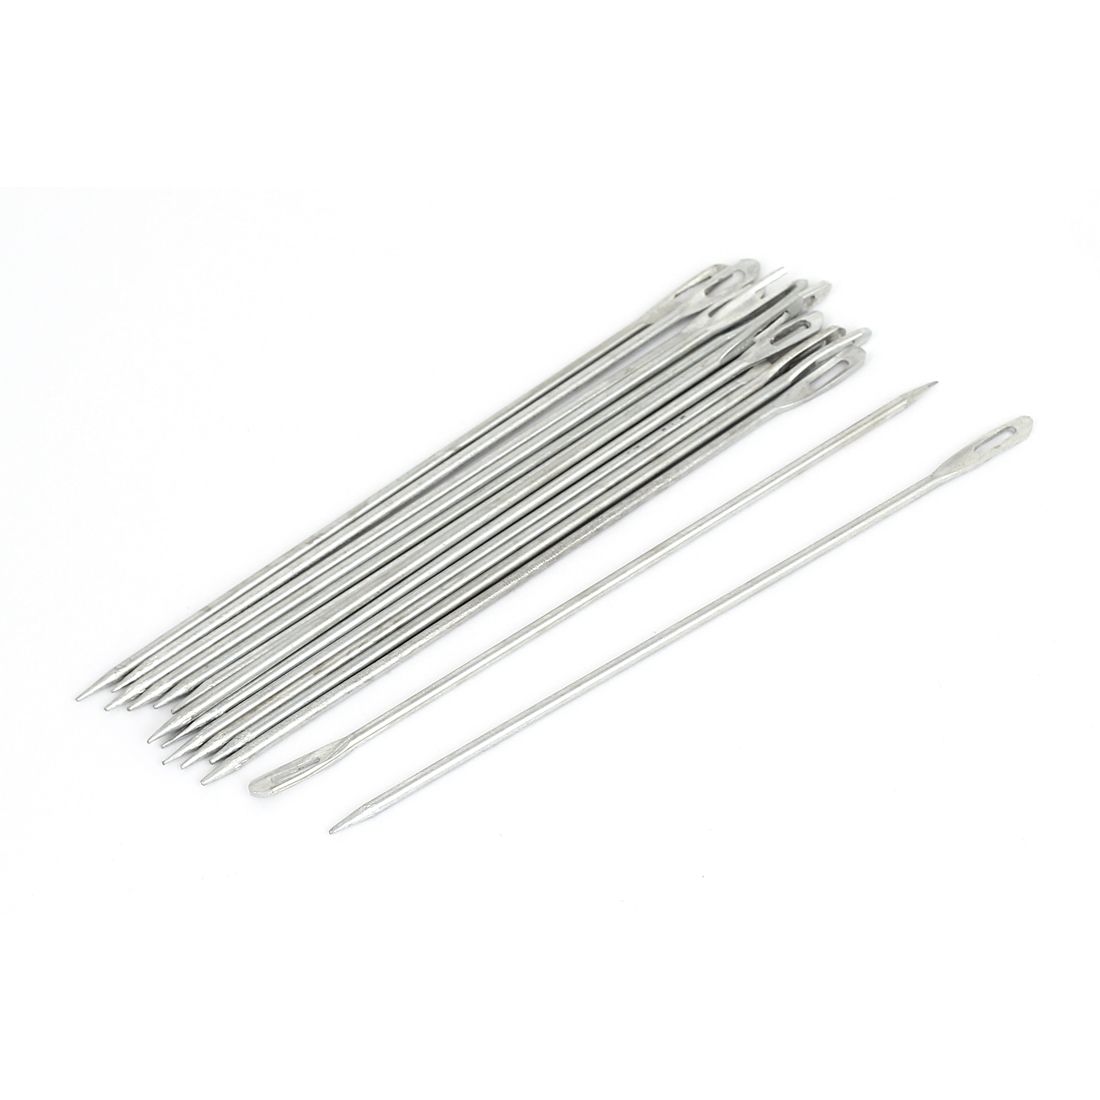 15Pcs Upholstery Repair Metal Sewing Needles for Canvas Leather Carpet